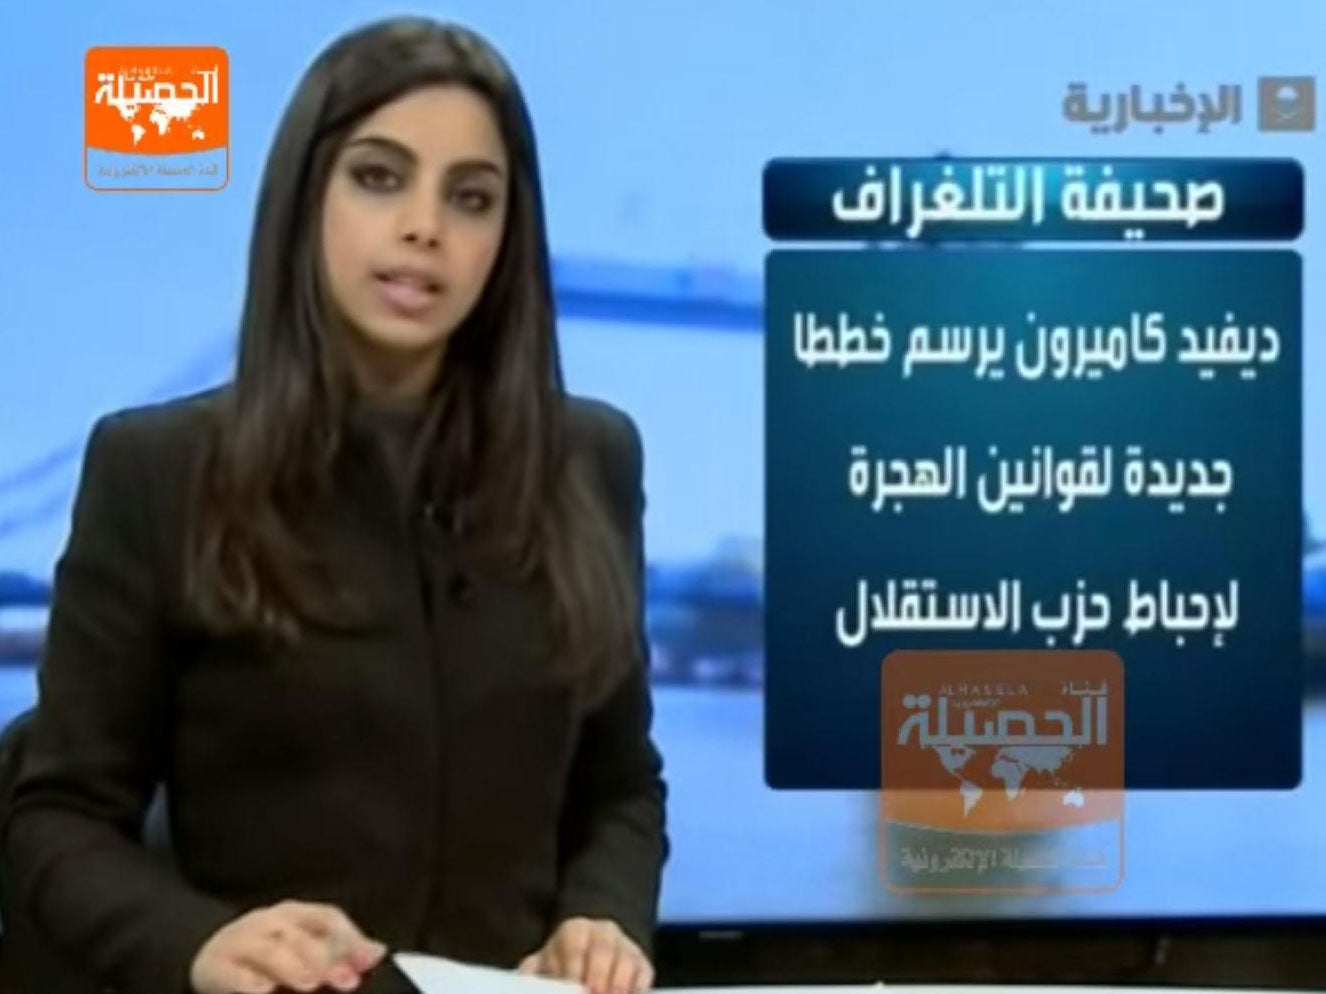 Model Saudi Woman Arrested For Wearing Miniskirt Released  Timecom